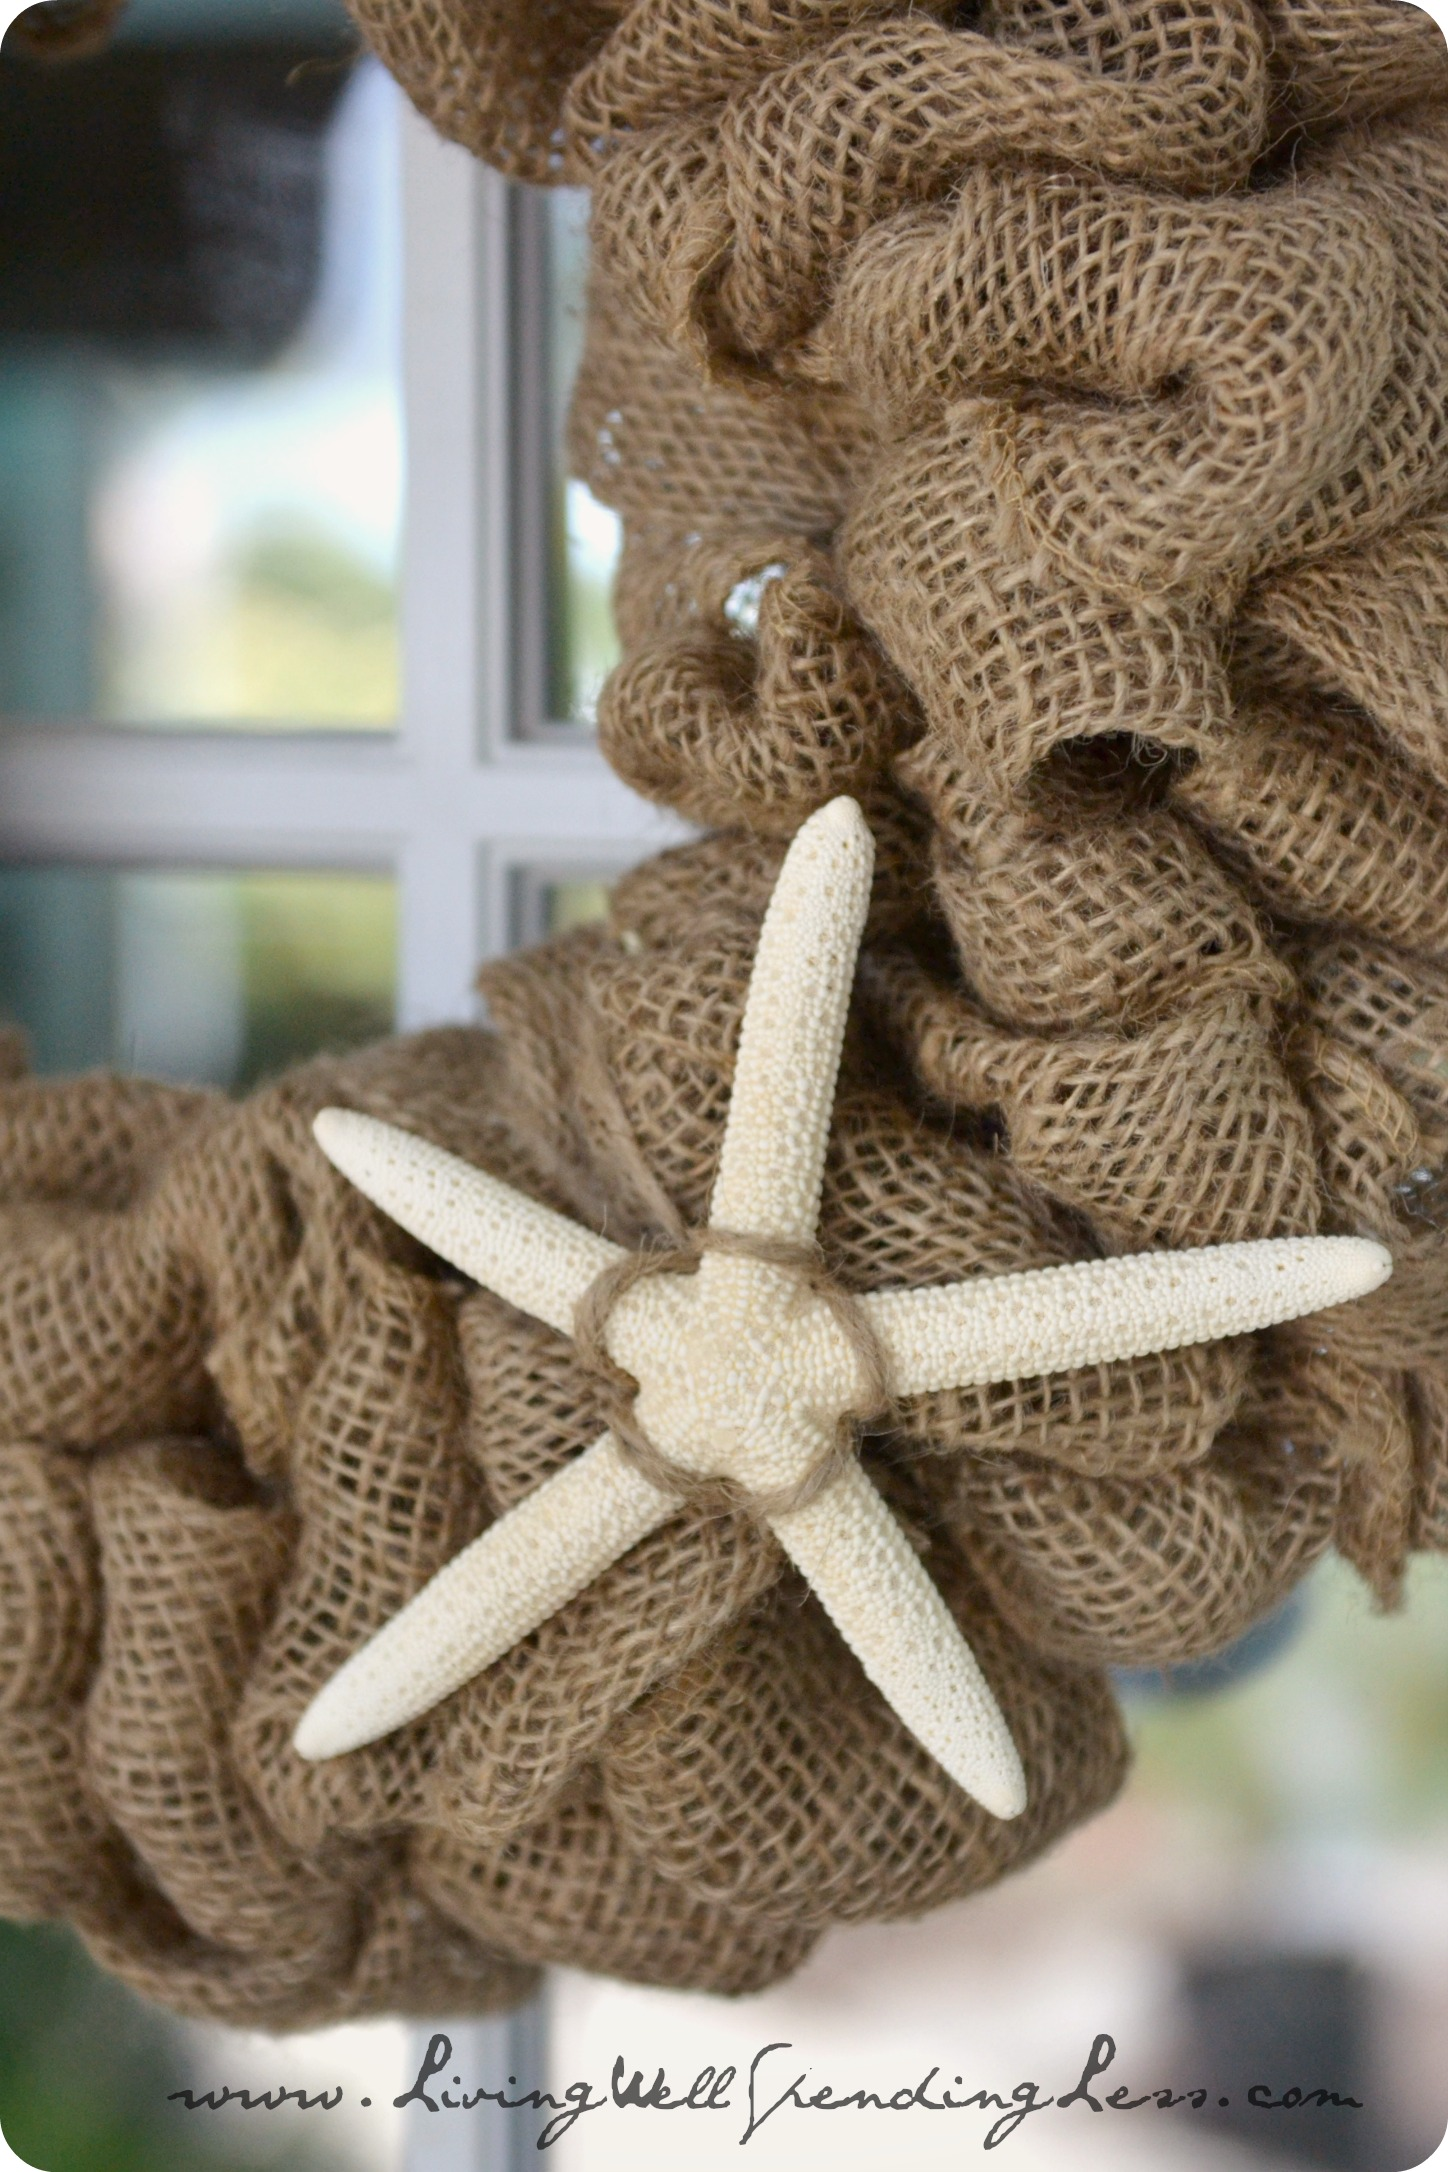 Burlap and starfish make adorable wreaths for the doors. These are so easy to make.